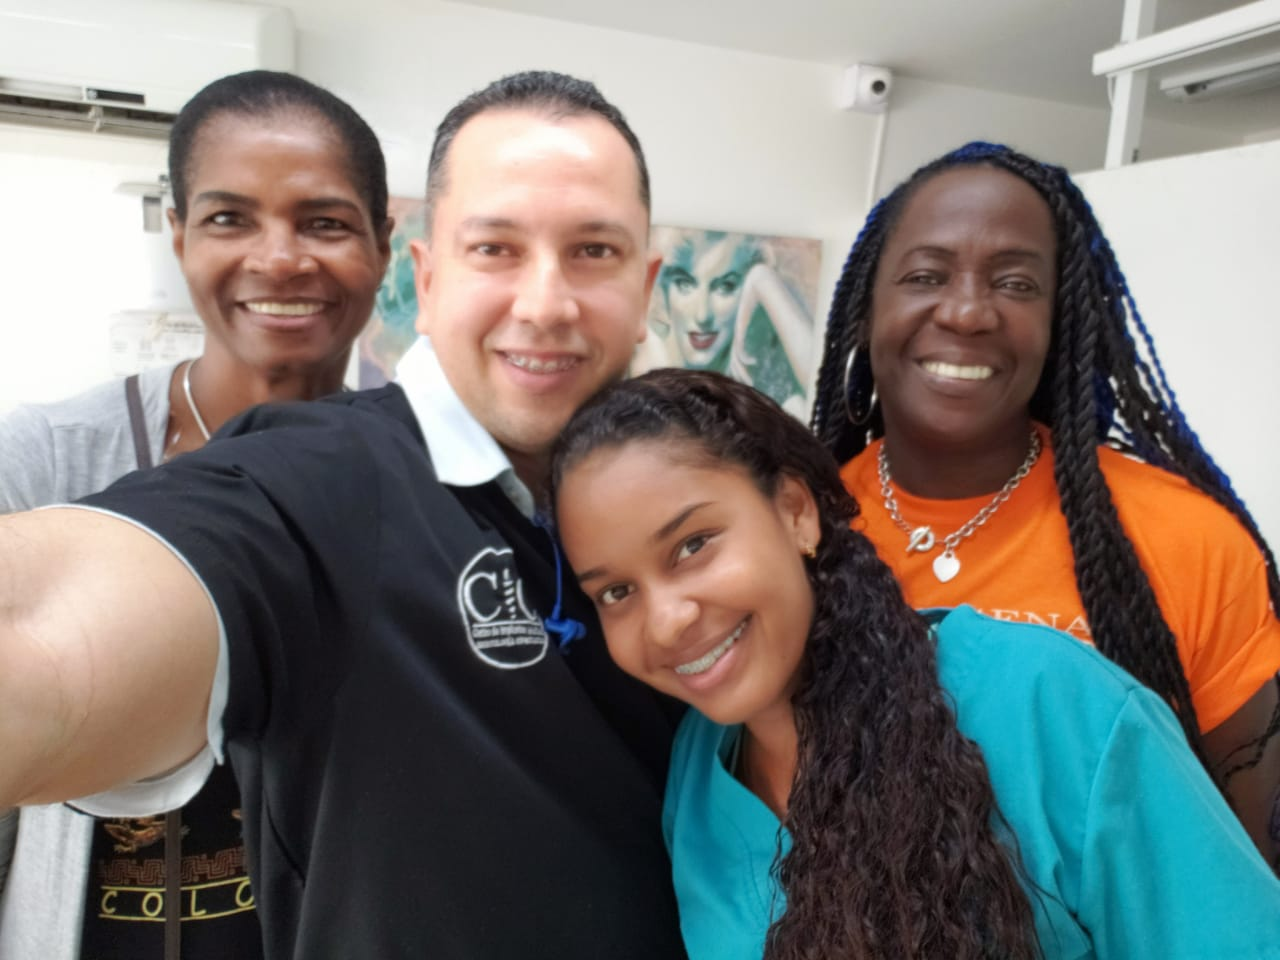 Dr. Julio Oliver, Angie, Daphne, and Cynthia in Cartagena, Colombia (Dental Tourism Colombia)